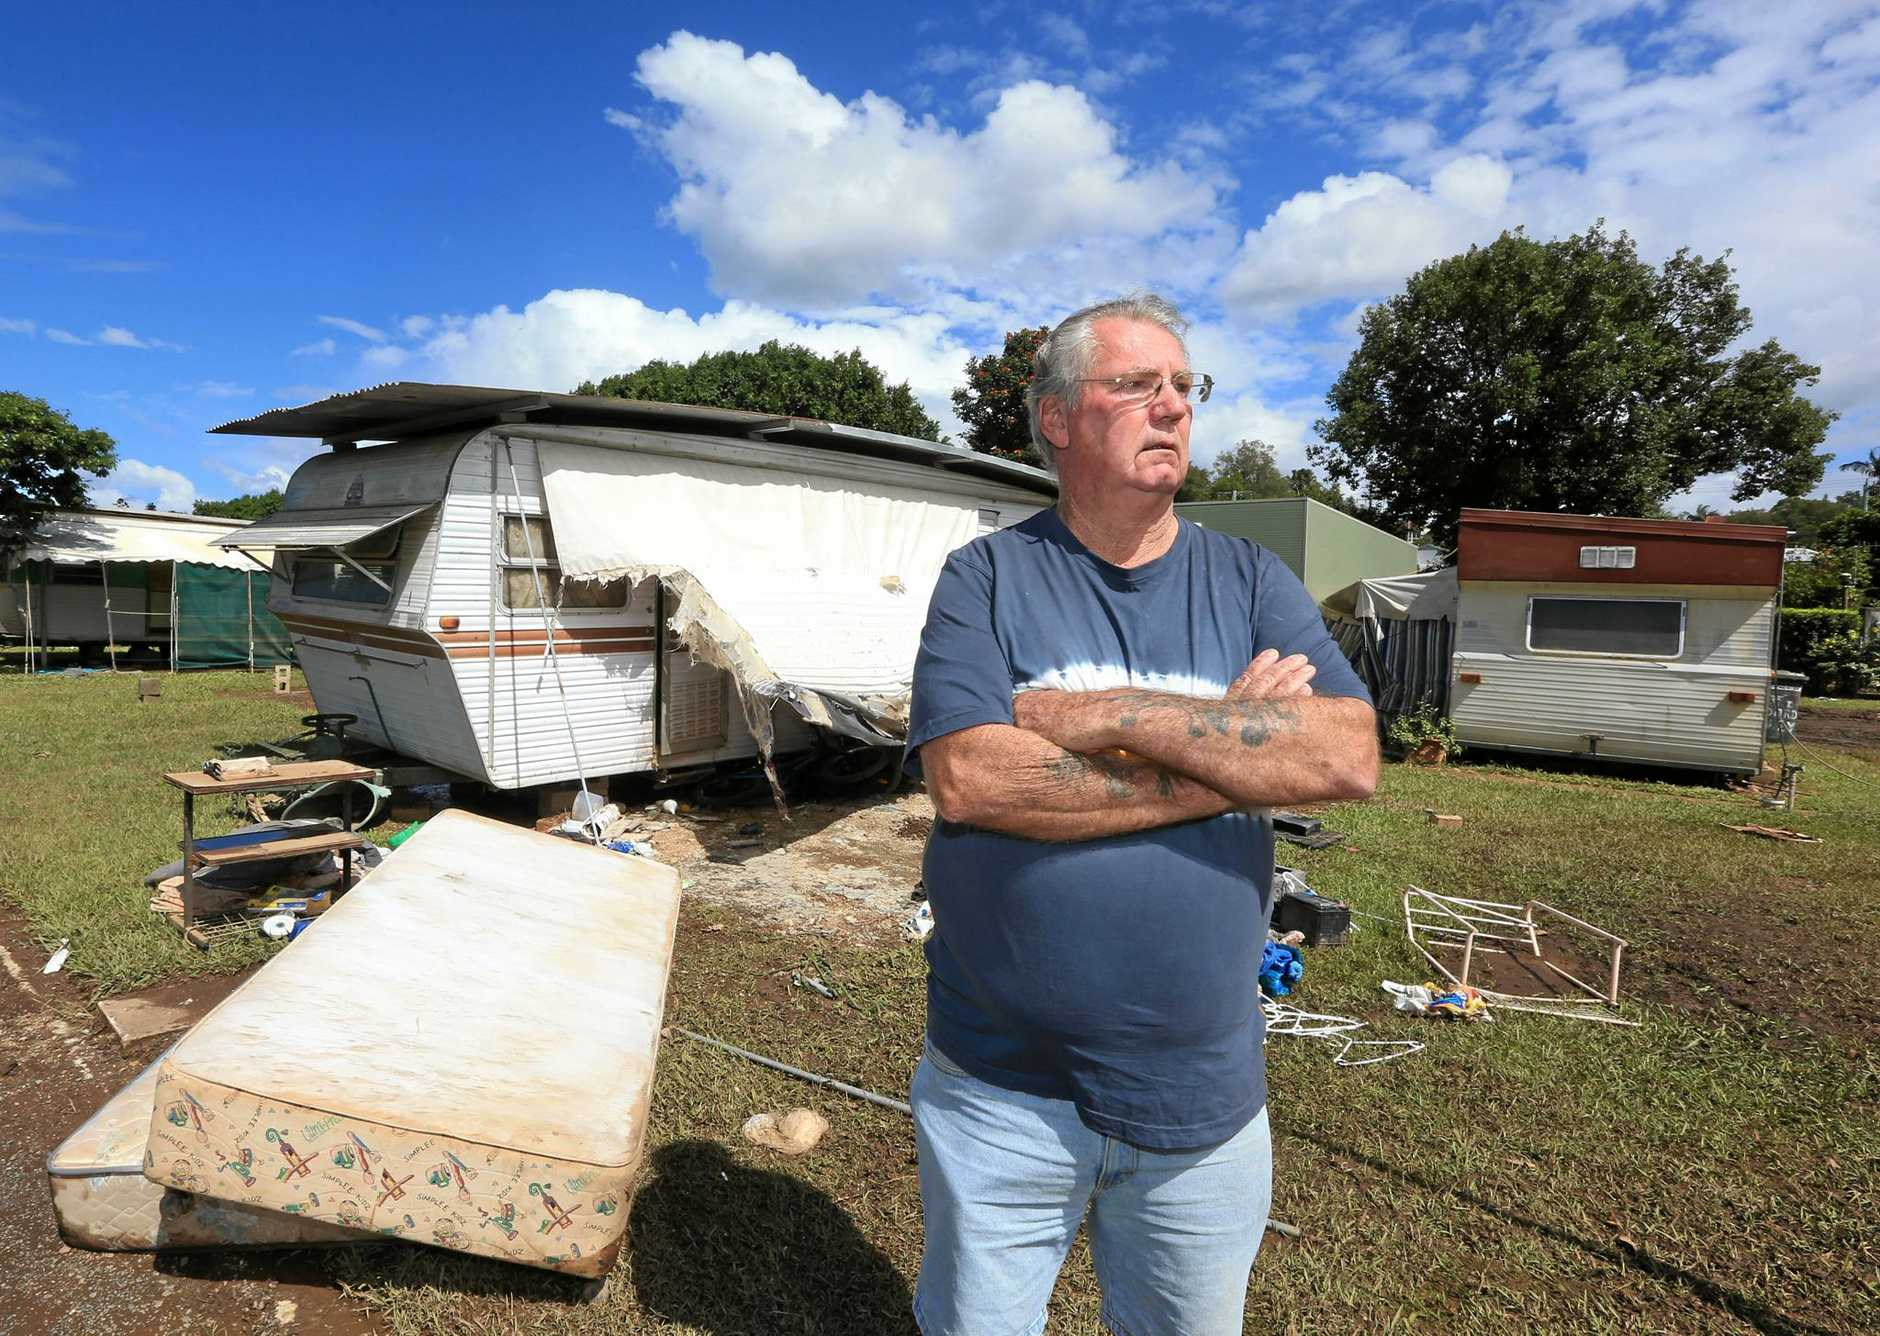 Graeme Bolton from the South Murwillumbah Caravan park with one of the destroyed caravans when the area flood after the Tweed River broke its banks last Thusday.